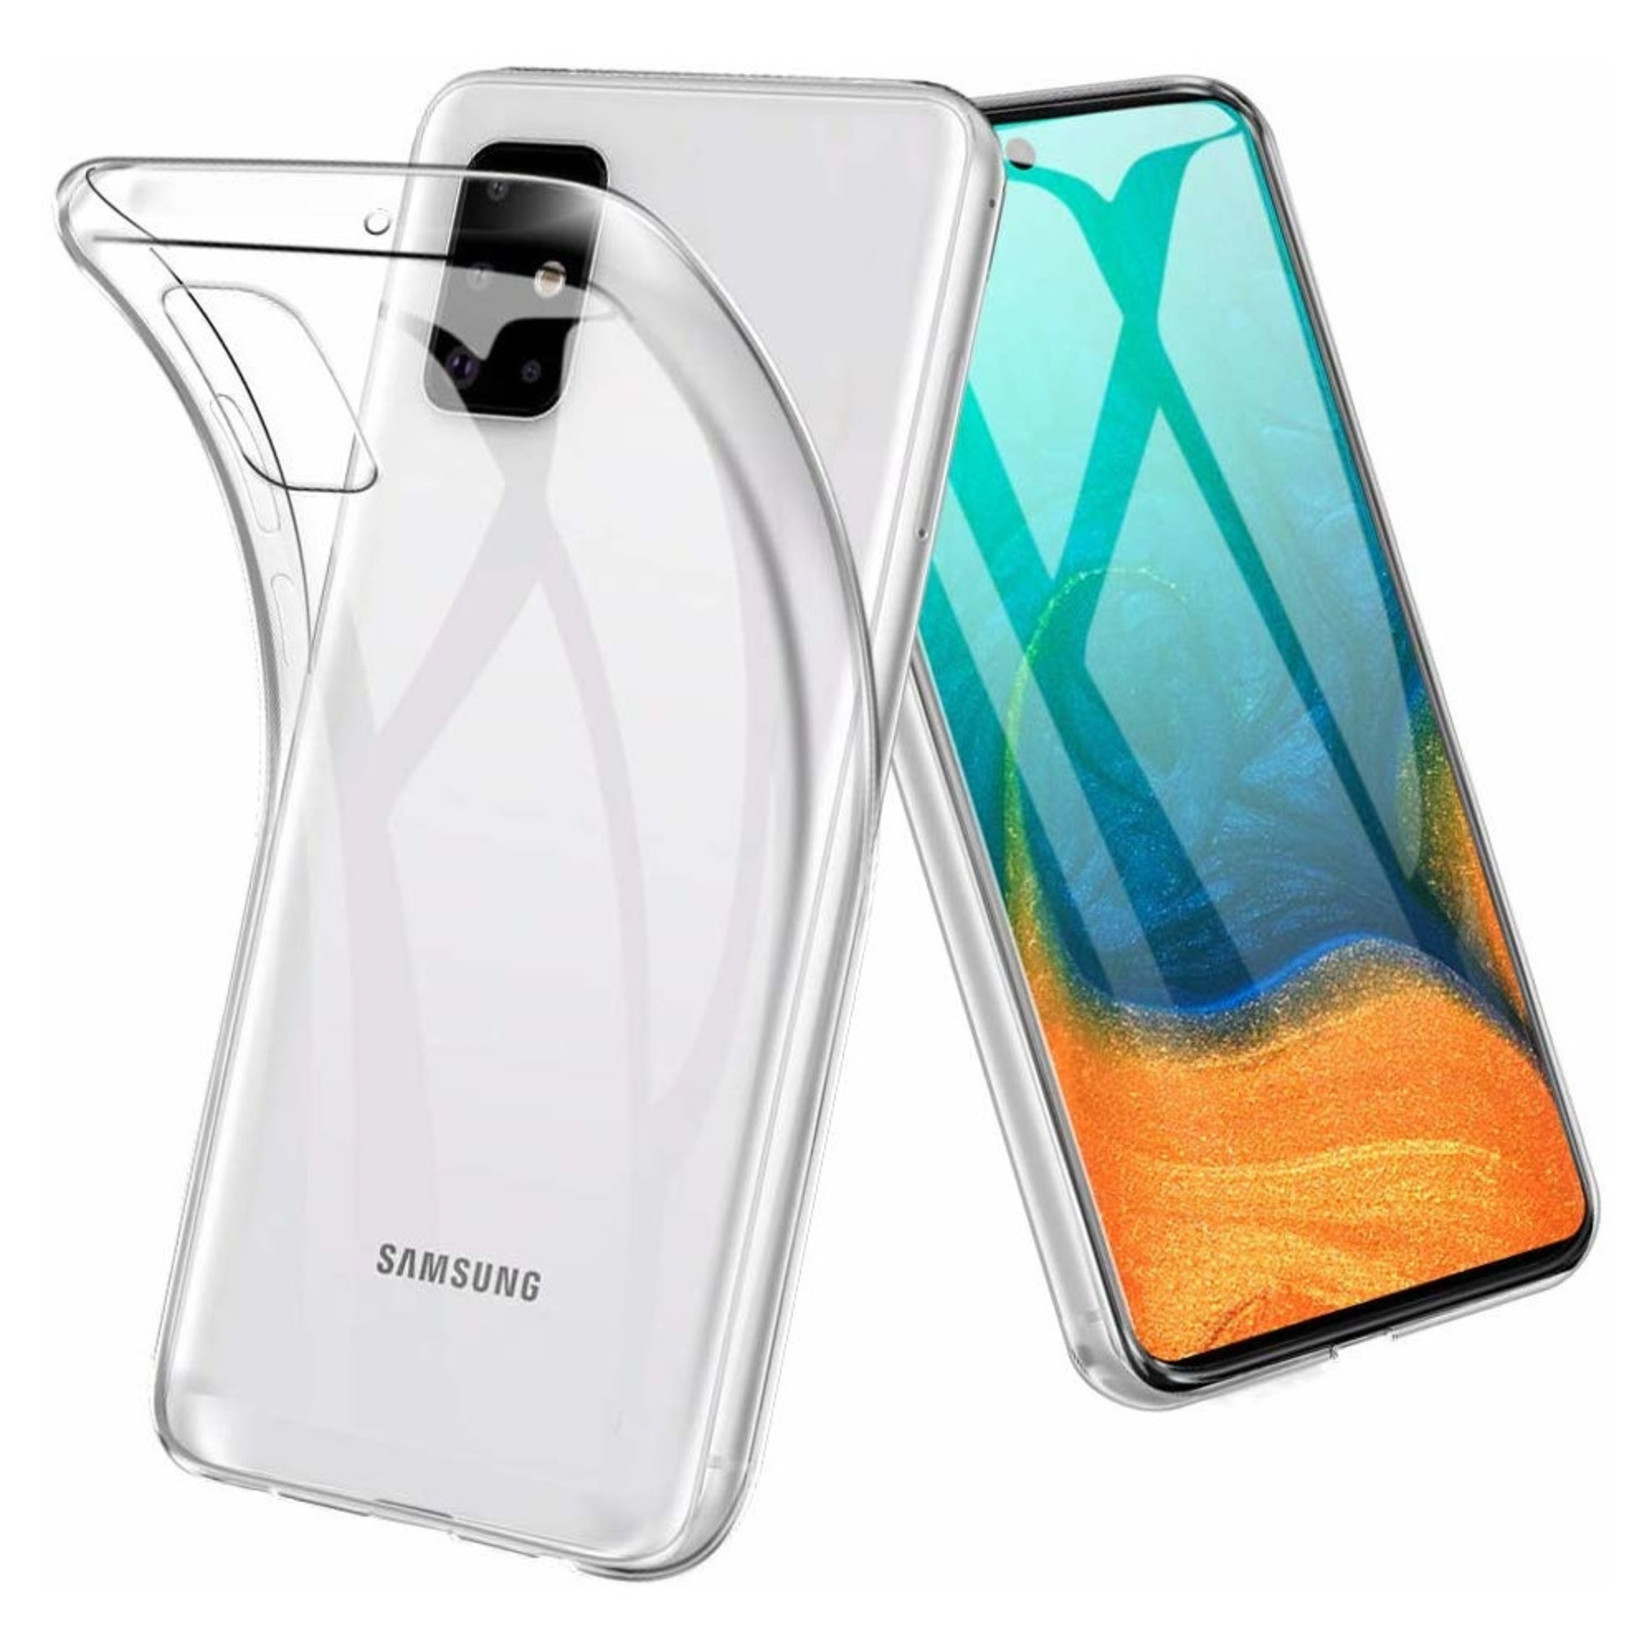 Colorfone Hoesje Coolskin3T voor Samsung A71 Transparant Wit